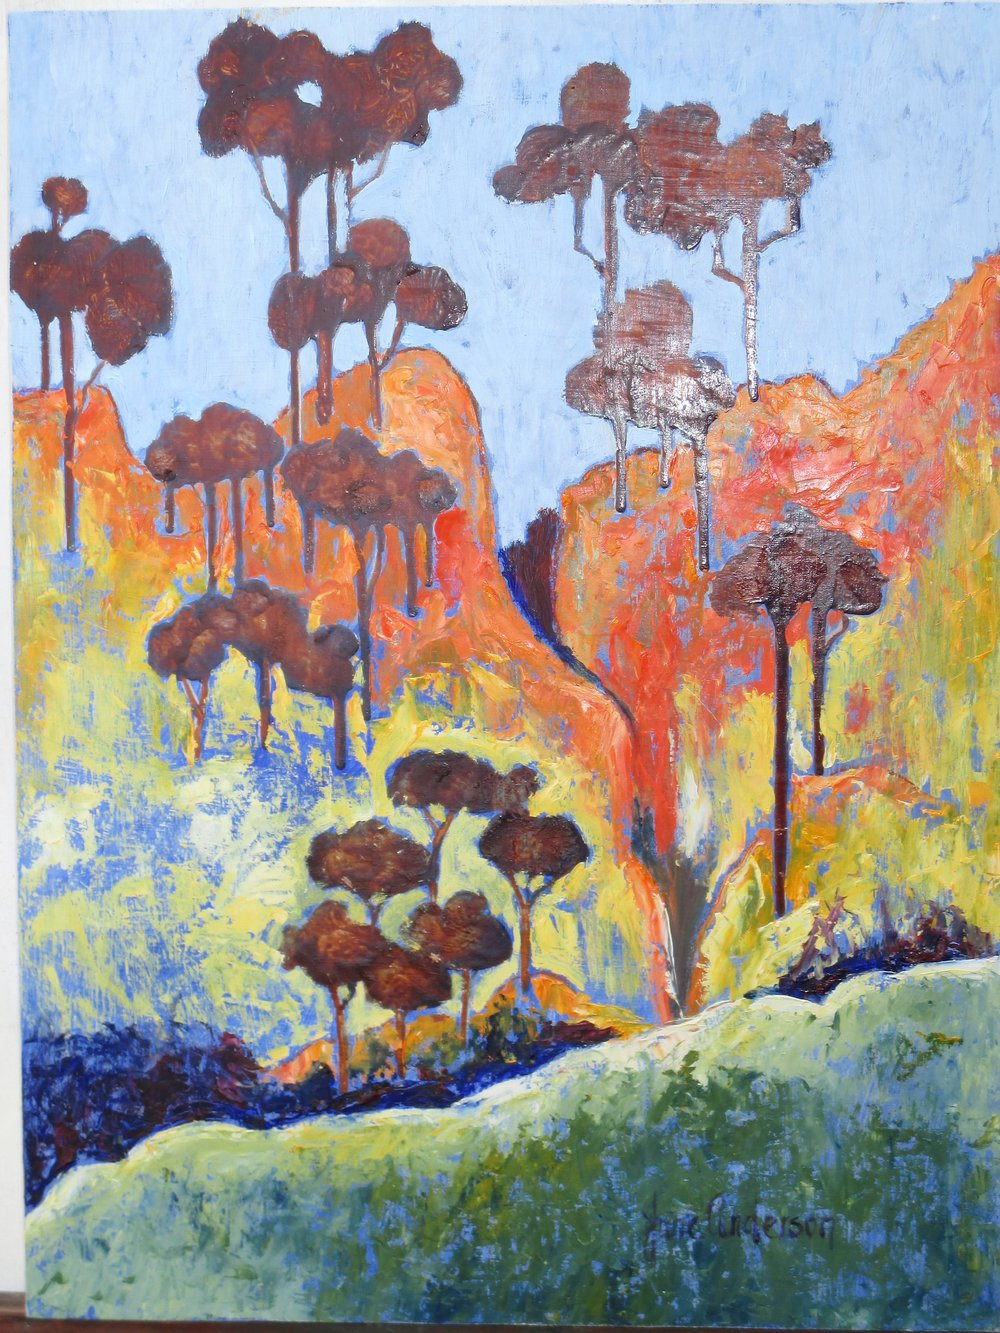 J Anderson Once-Upon-a-Mountain-oil-80x45-June-Anderson1.JPG